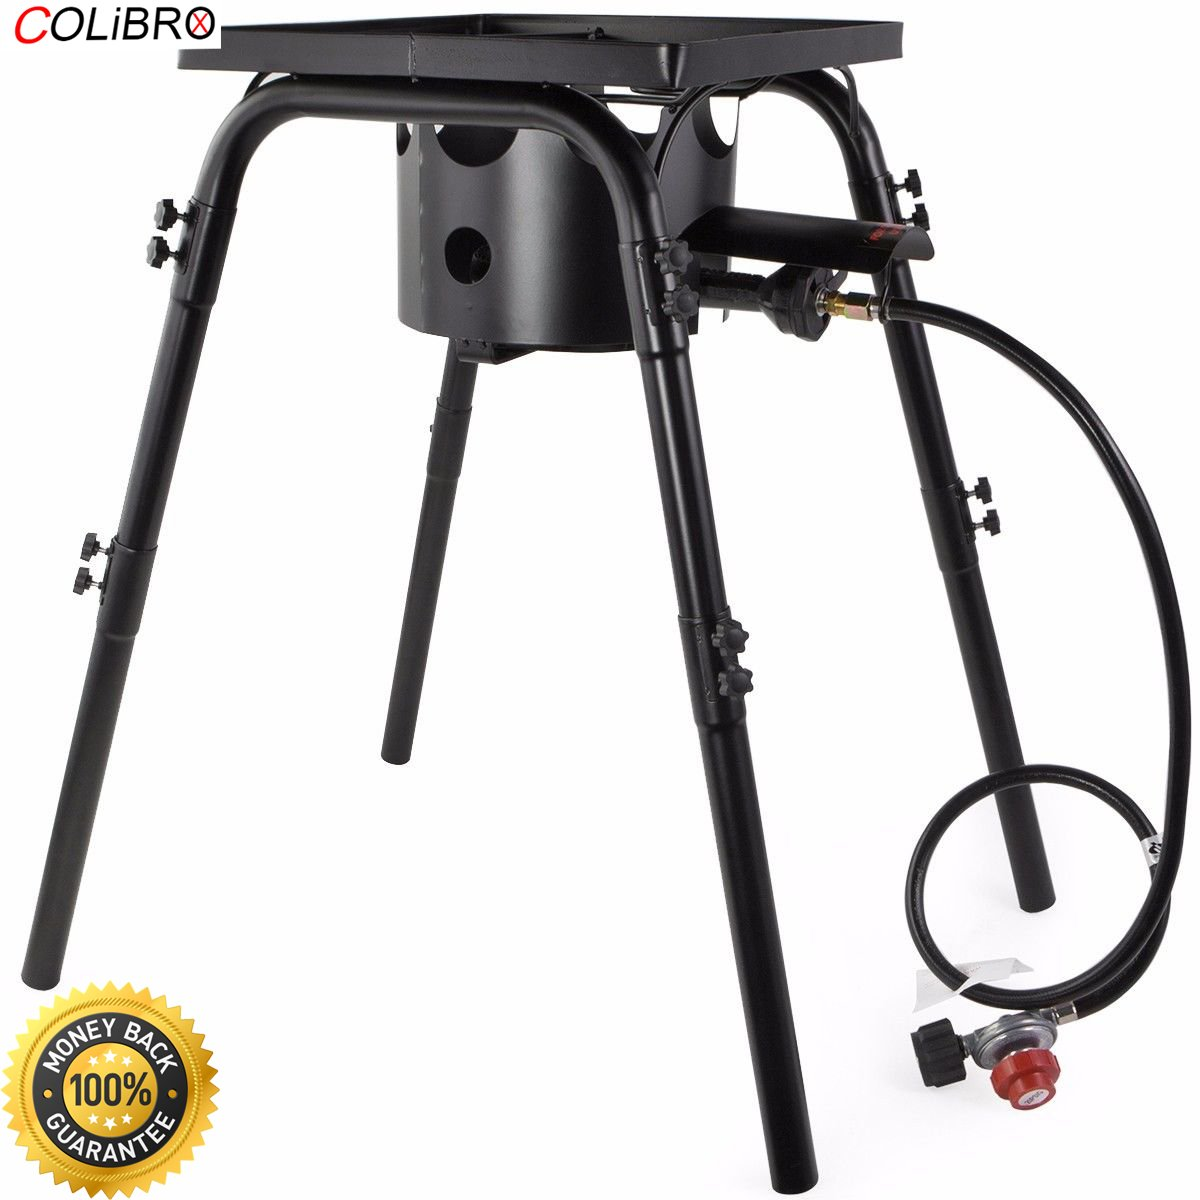 COLIBROX-- High pressure lpg Gas Stove Stand Burner Portable Propane Camping bbq Cooker UL high pressure Gas Stove Tabletop Propane Gas Heavy-duty Cooker